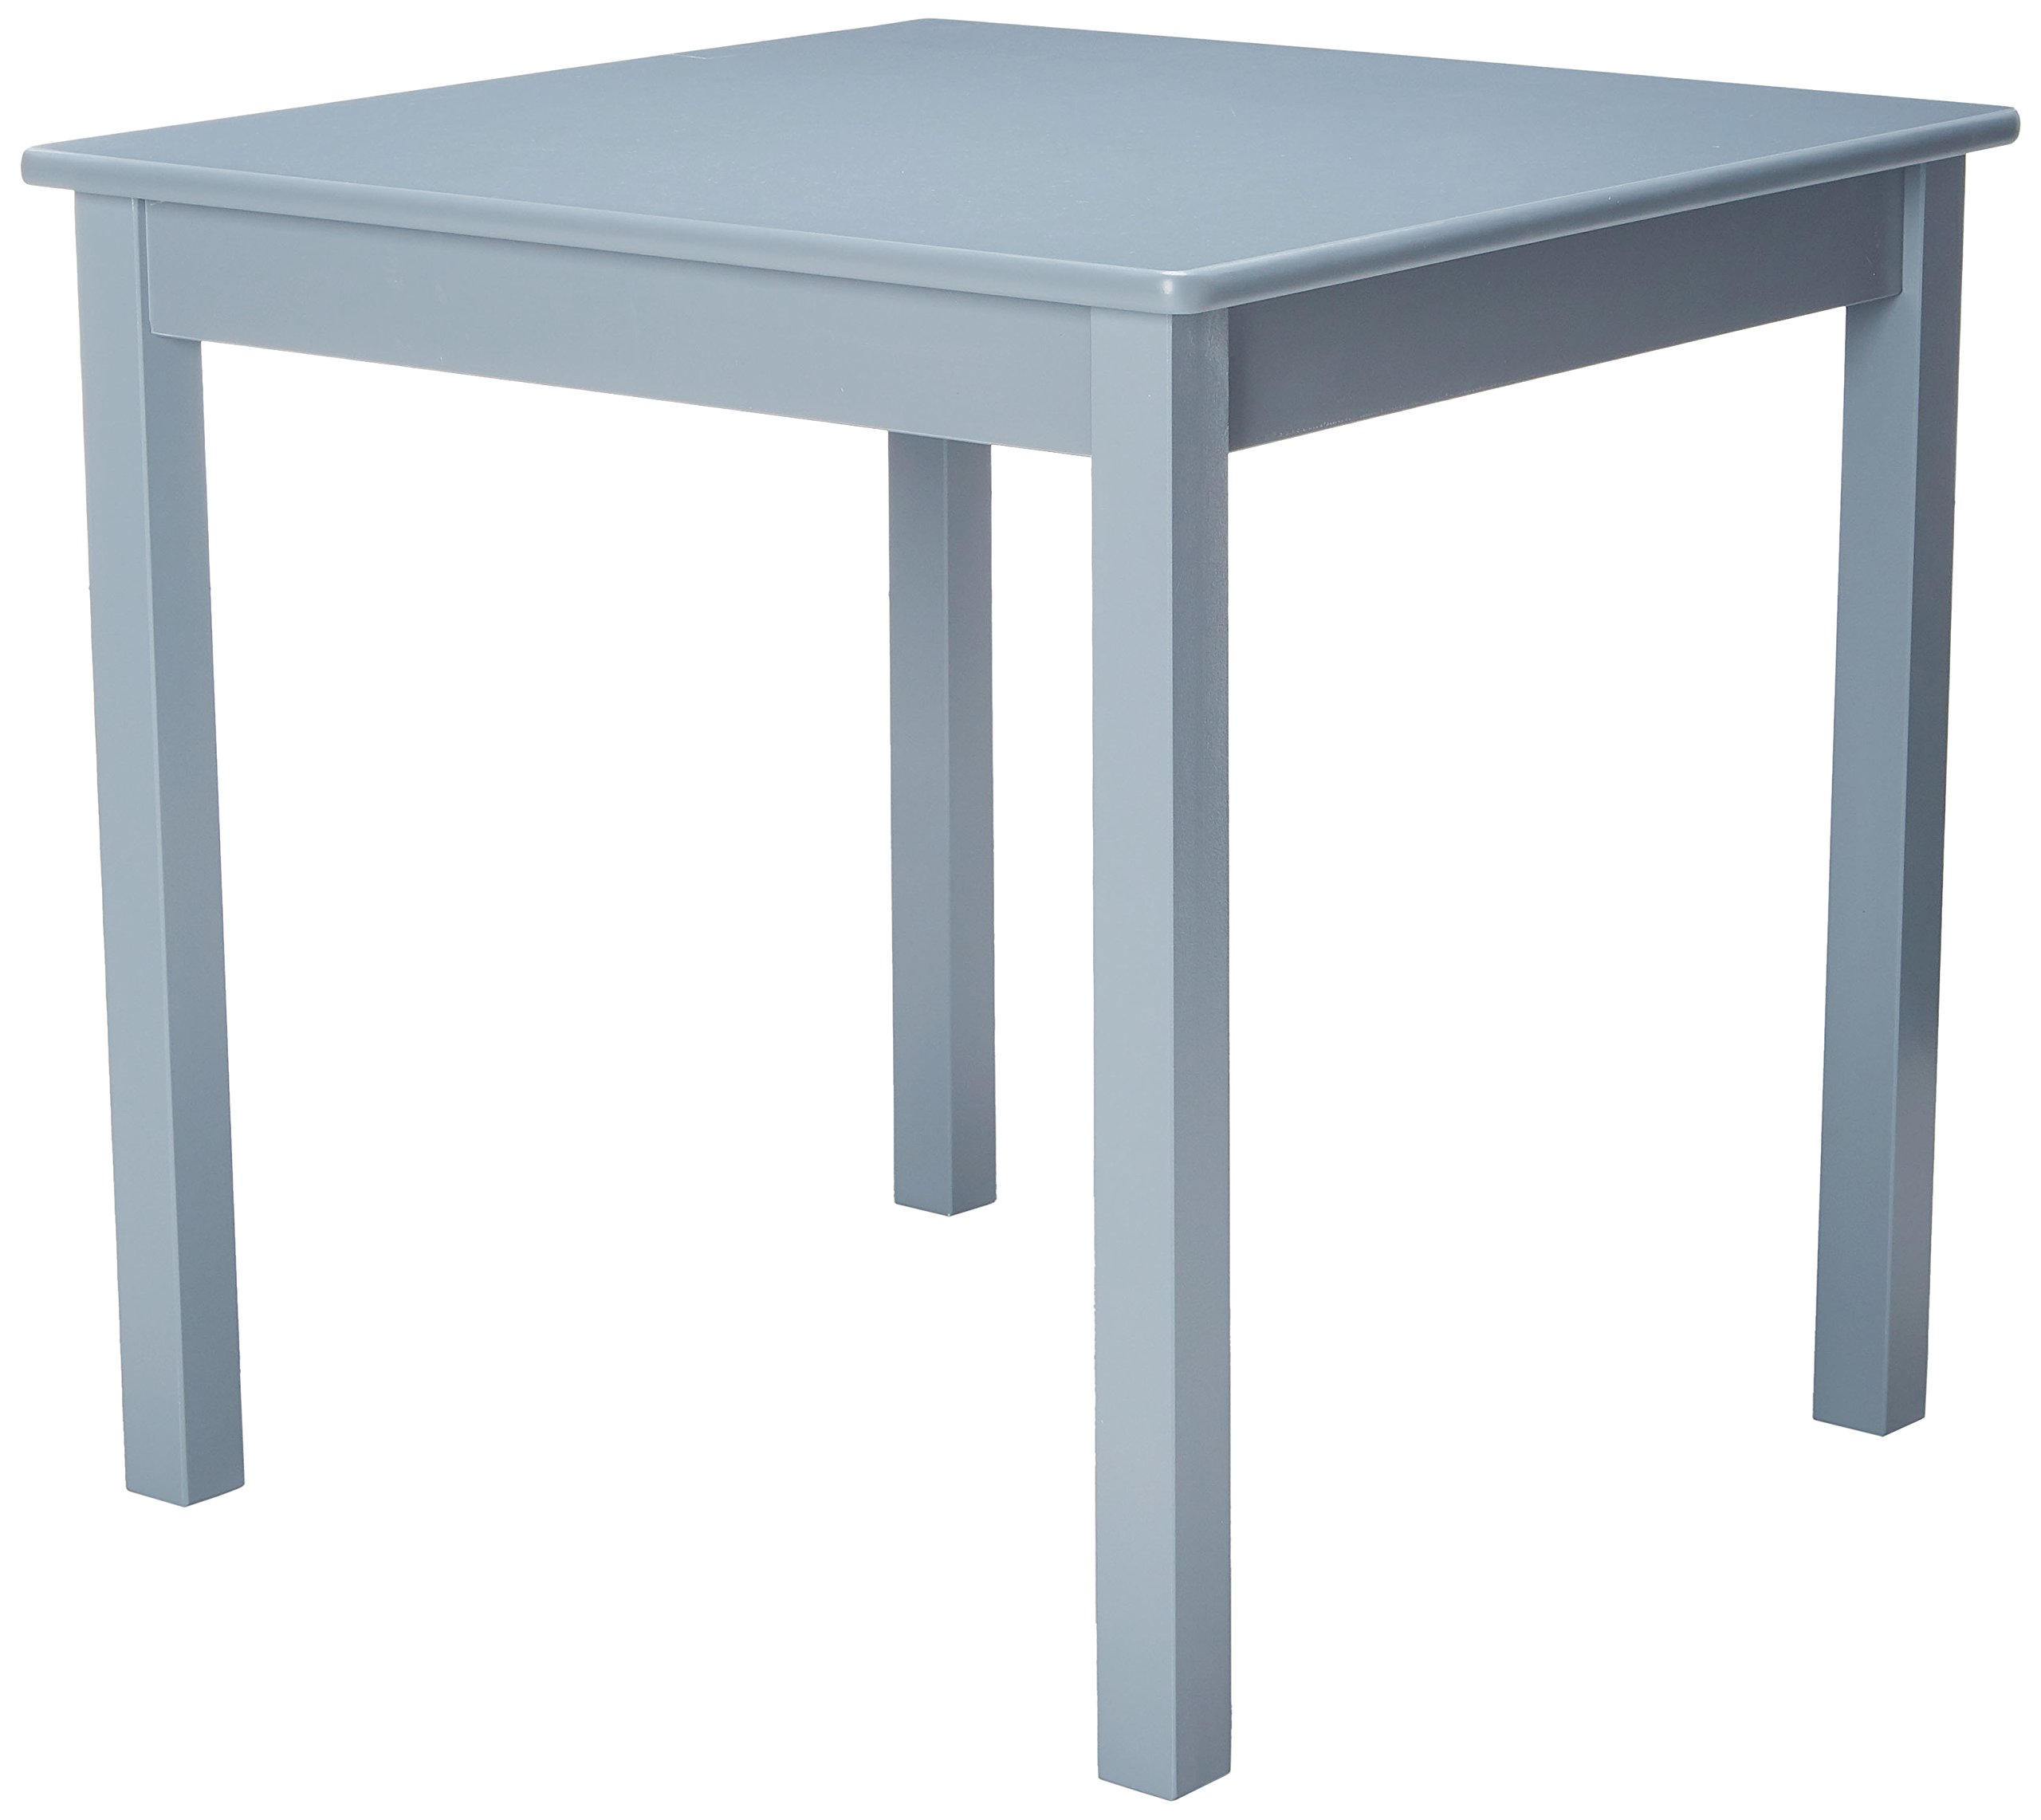 Lipper International Child's Table for Play or Activity, 23.75'' x 23.75'' Square, 21.66'' Tall, Grey by Lipper International